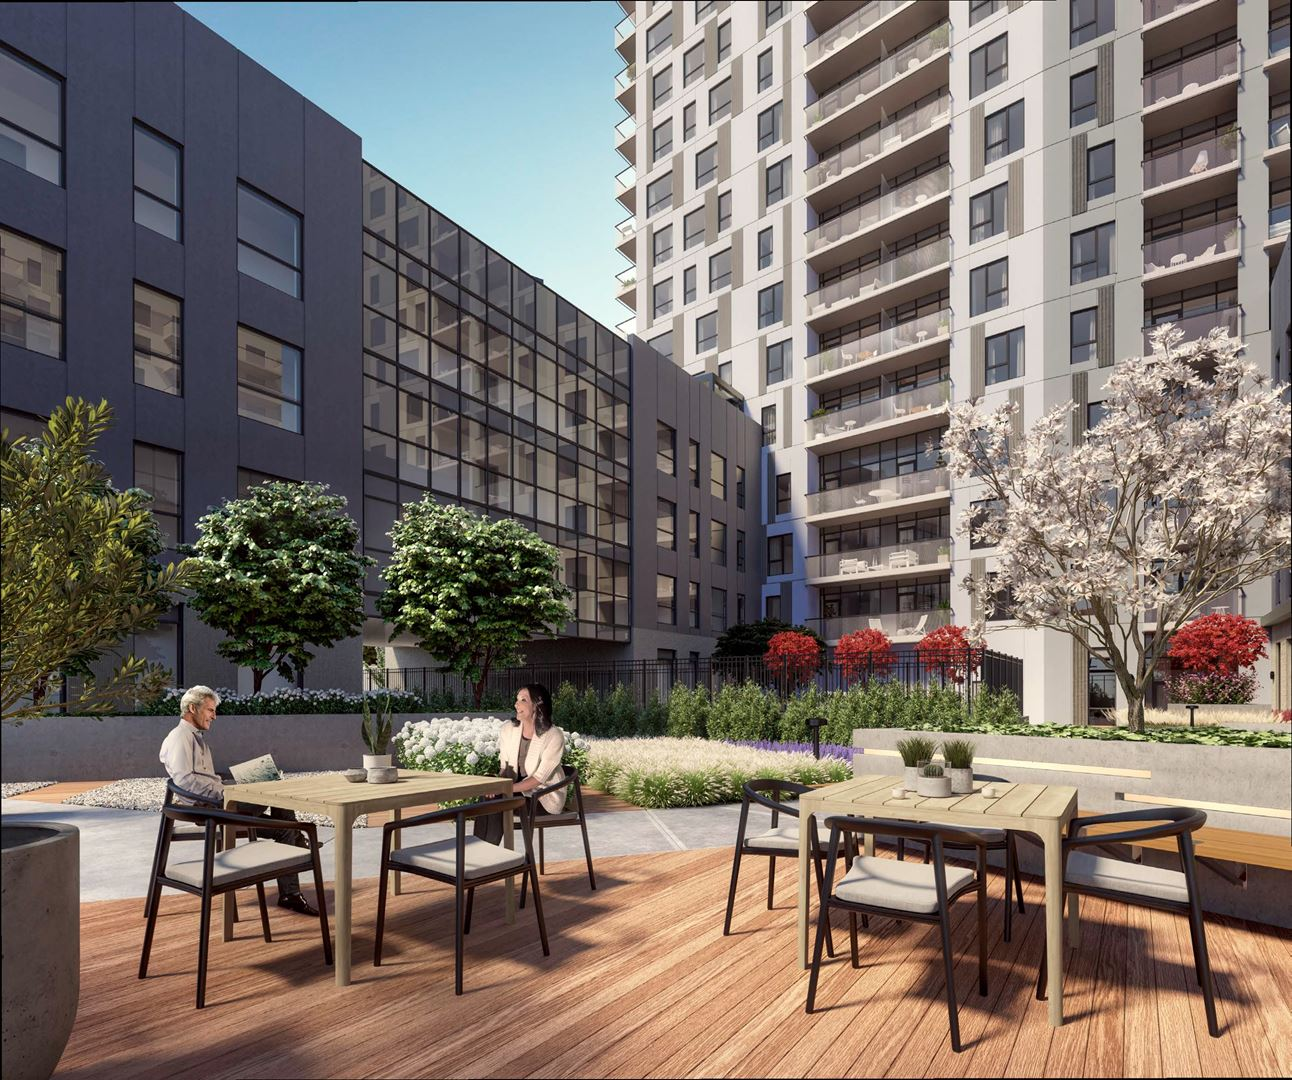 Rendering of Elevate Condos outdoor patio space.